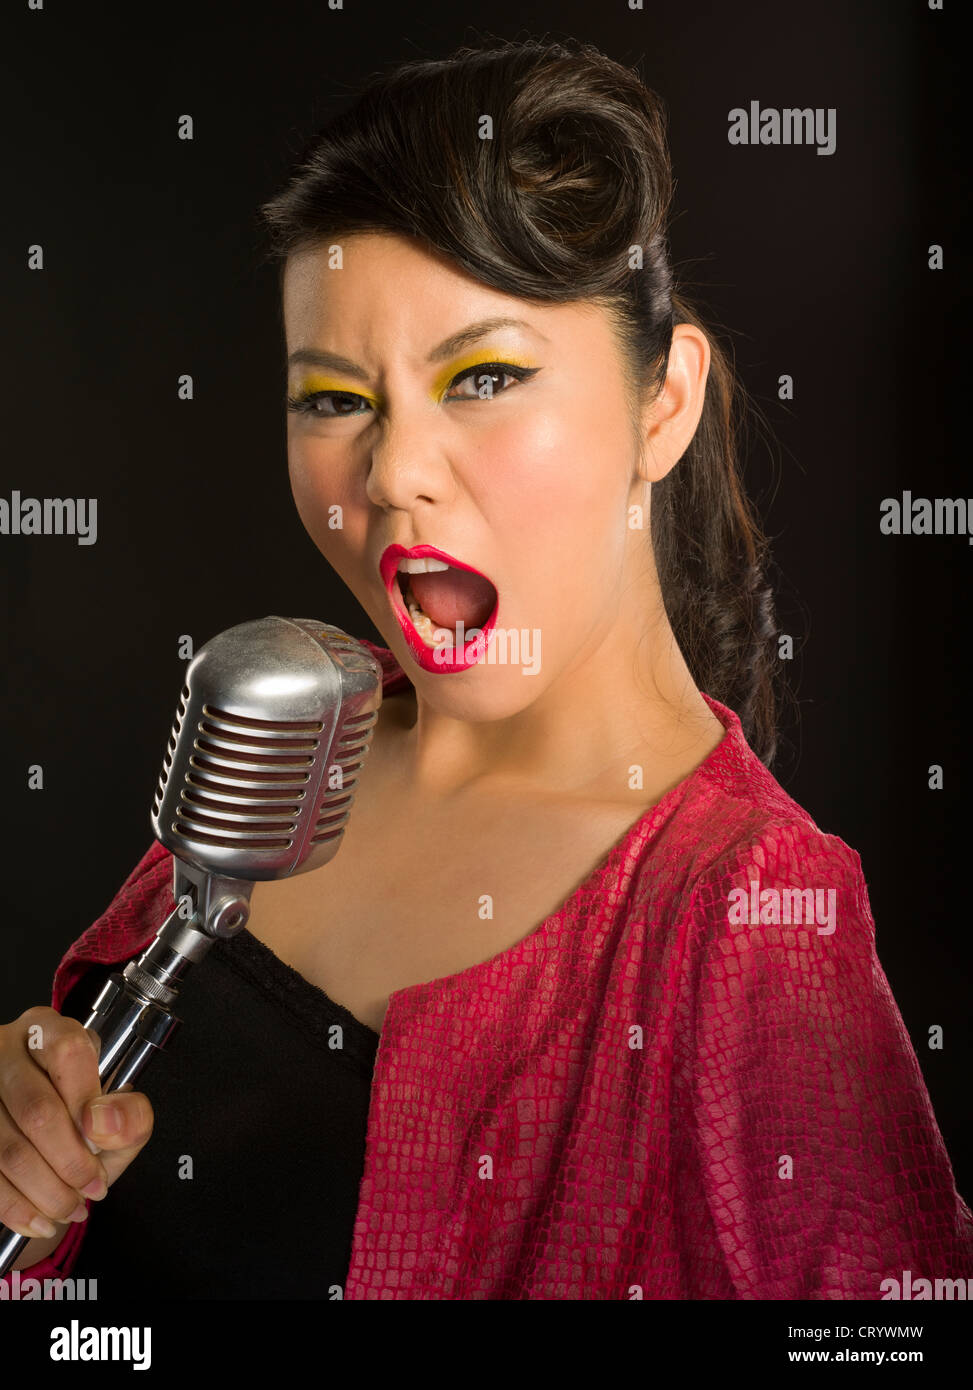 Asian girl singer